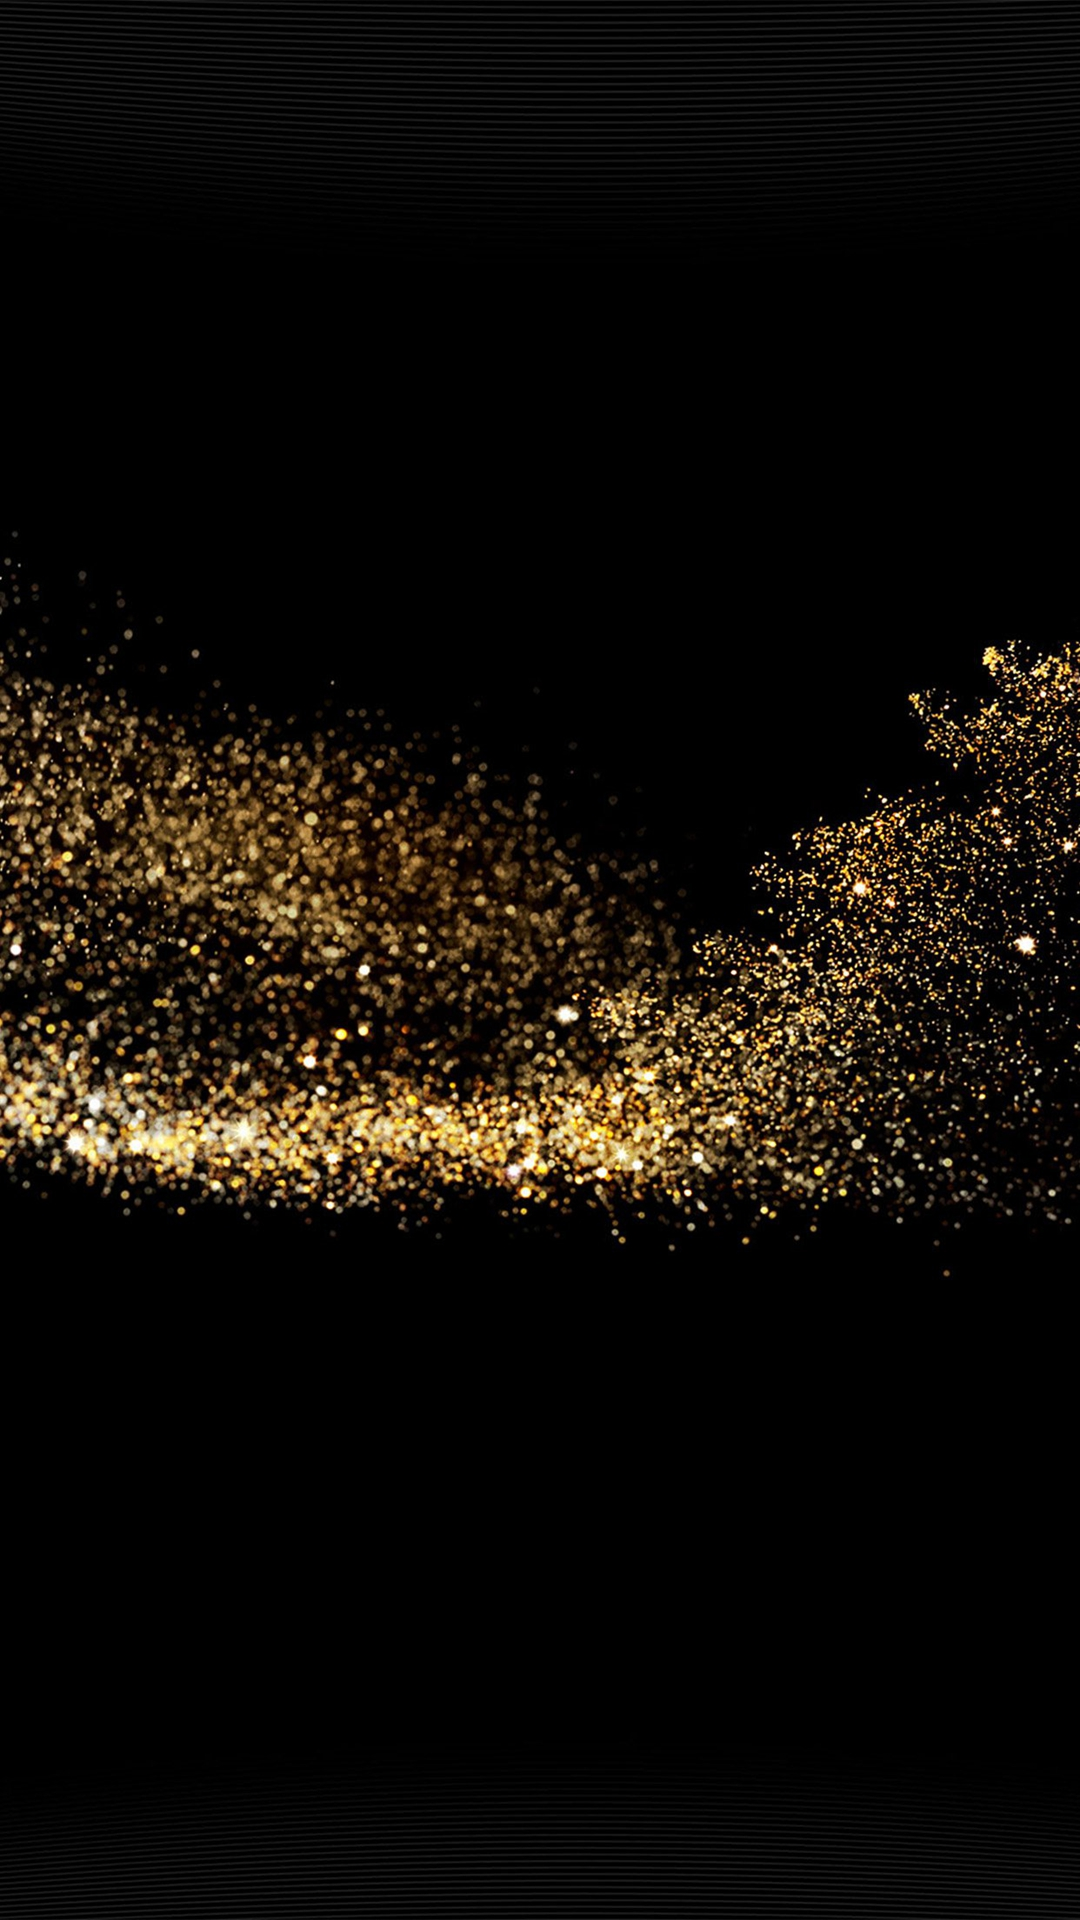 Gold-Sparkle-Beauty-Dark-Pattern-iPhone-plus-wallpaper-wp4606280